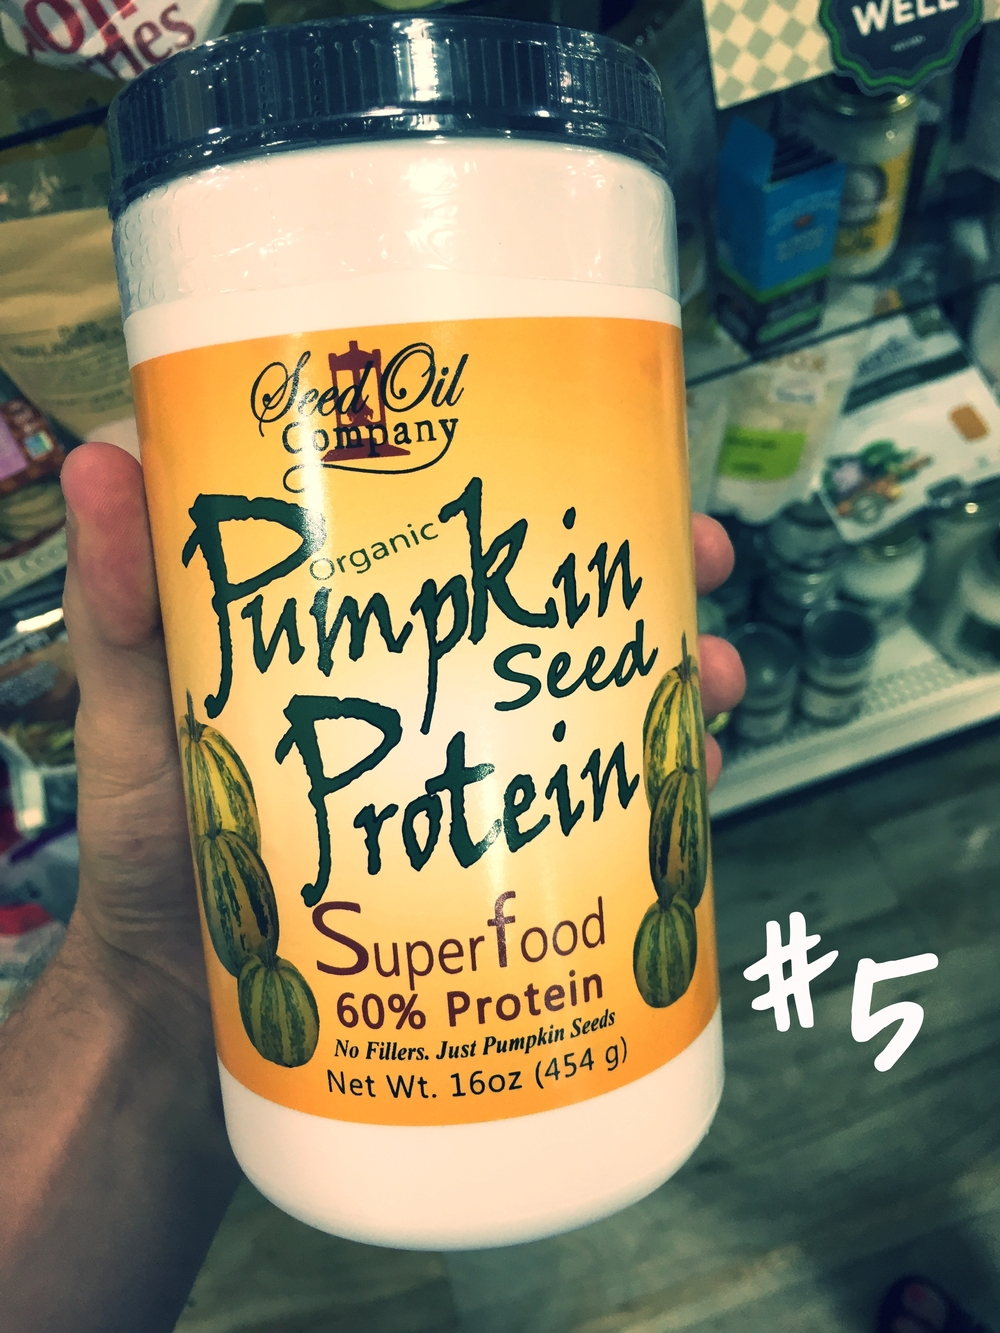 Seed Oil Company Pumpkin Seed Protein